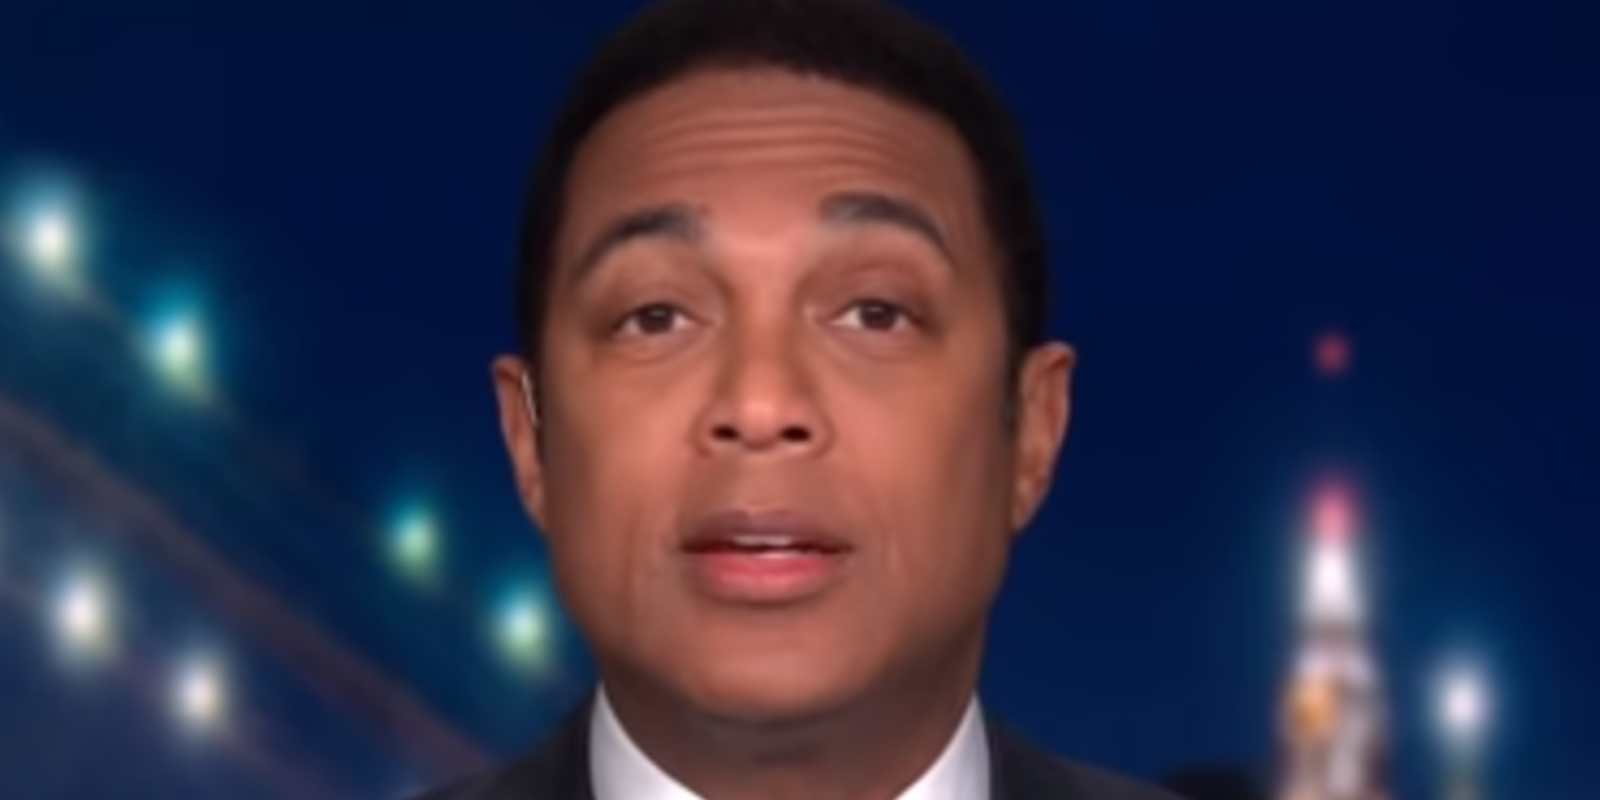 WATCH: Don Lemon says that 'we don't need to hear the other side' of Markle racism controversy